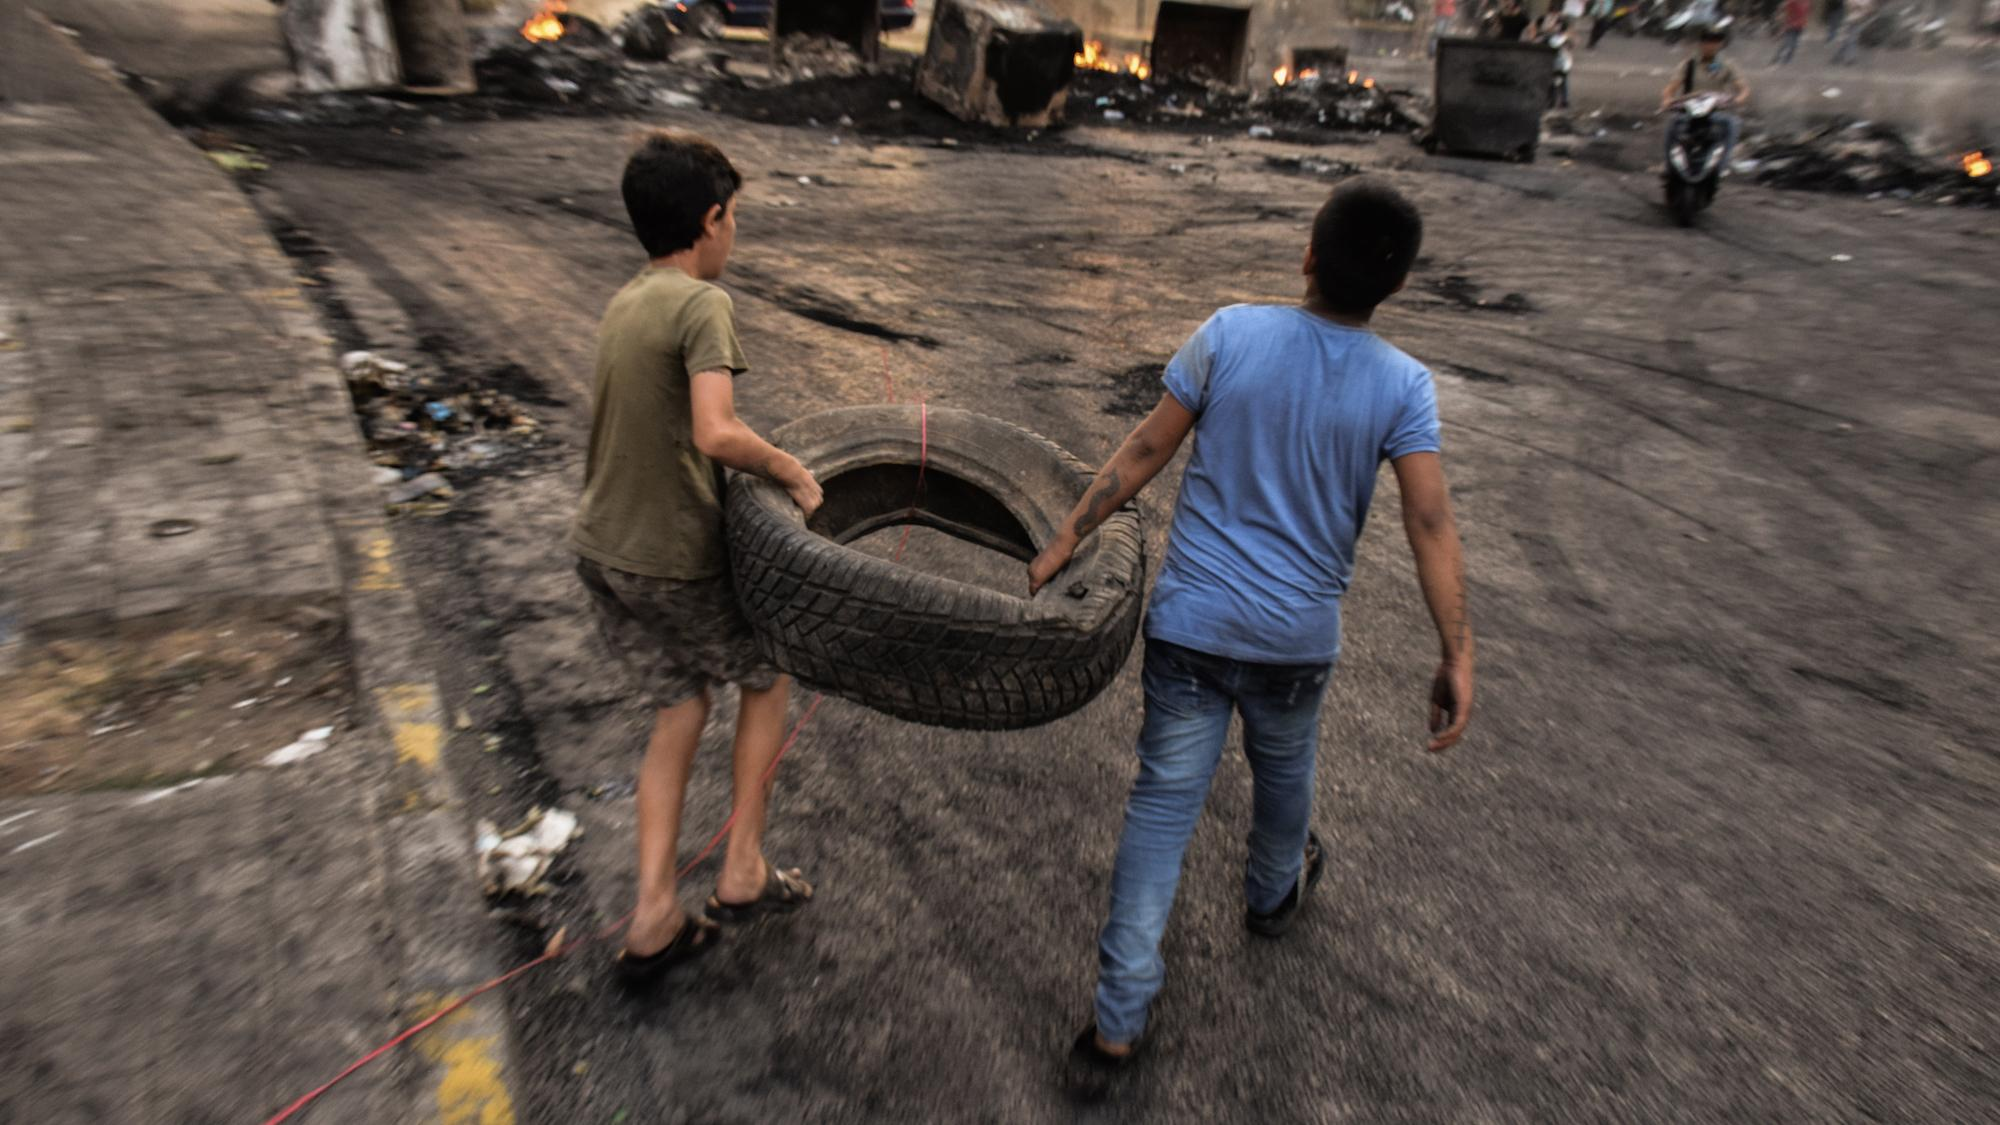 Two young boys carry a tire at a roadblock reinforced by burning dumpsters. Beirut, Lebanon. October 18, 2019. (Mouran Mattar/Fawra)